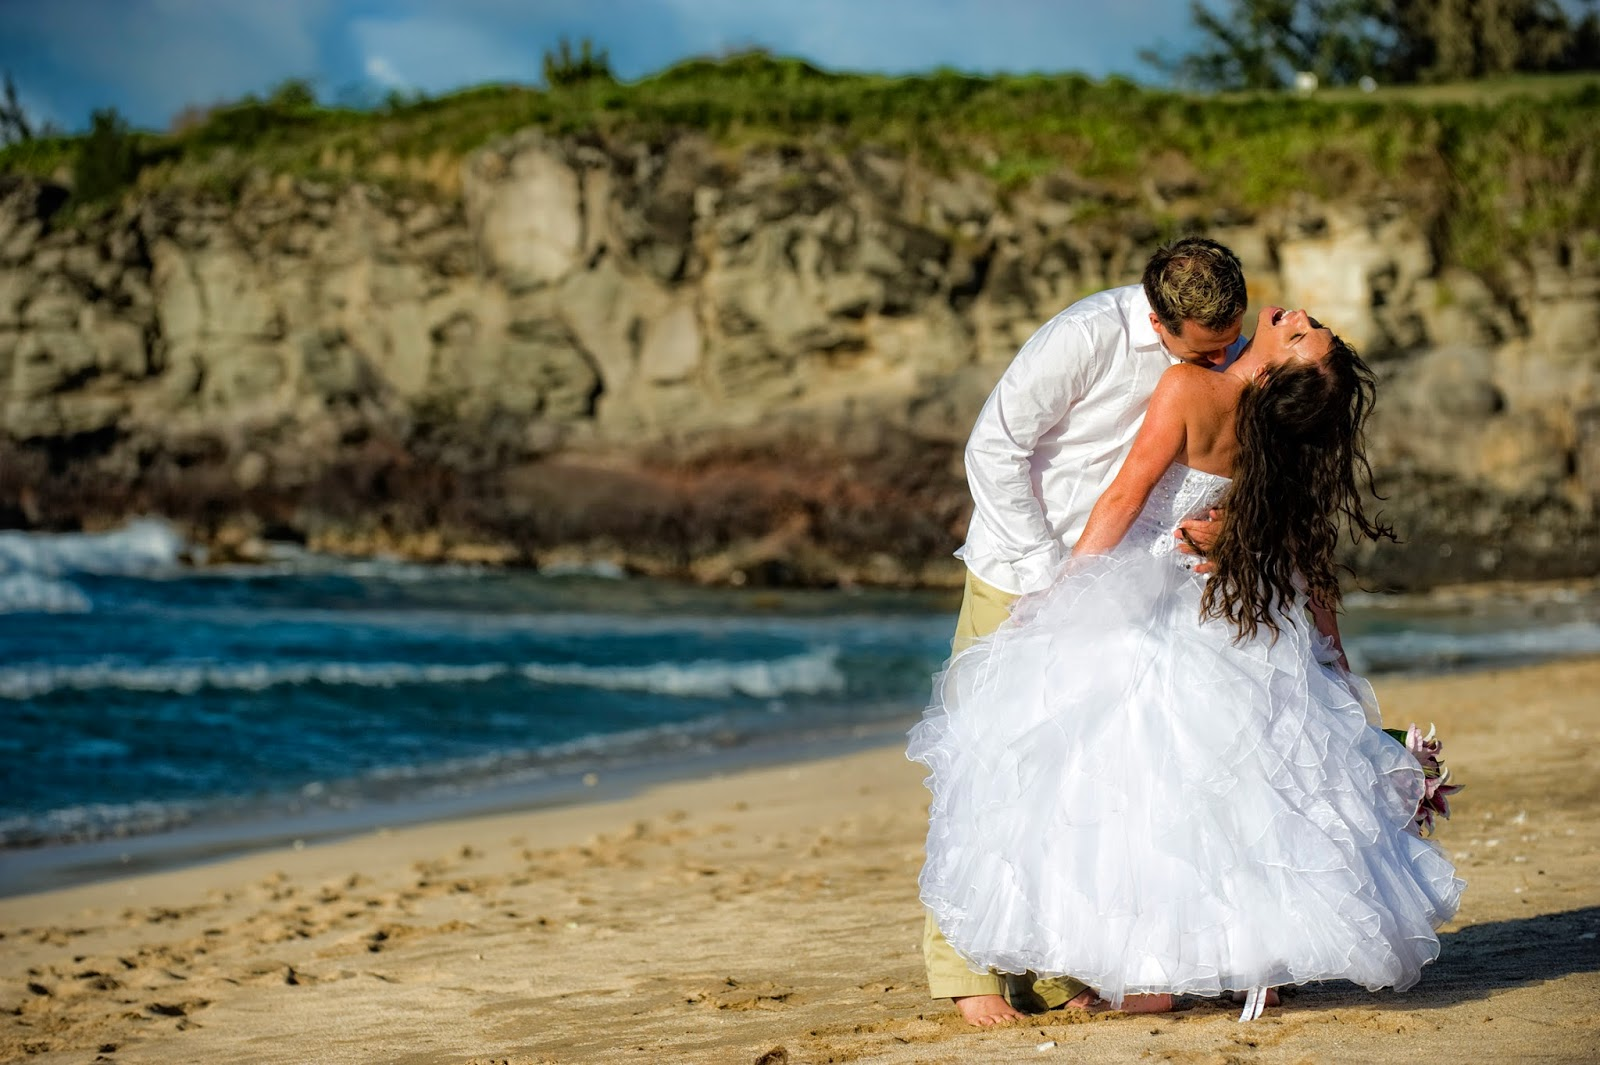 maui wedding planners, maui wedding photographers, maui weddings